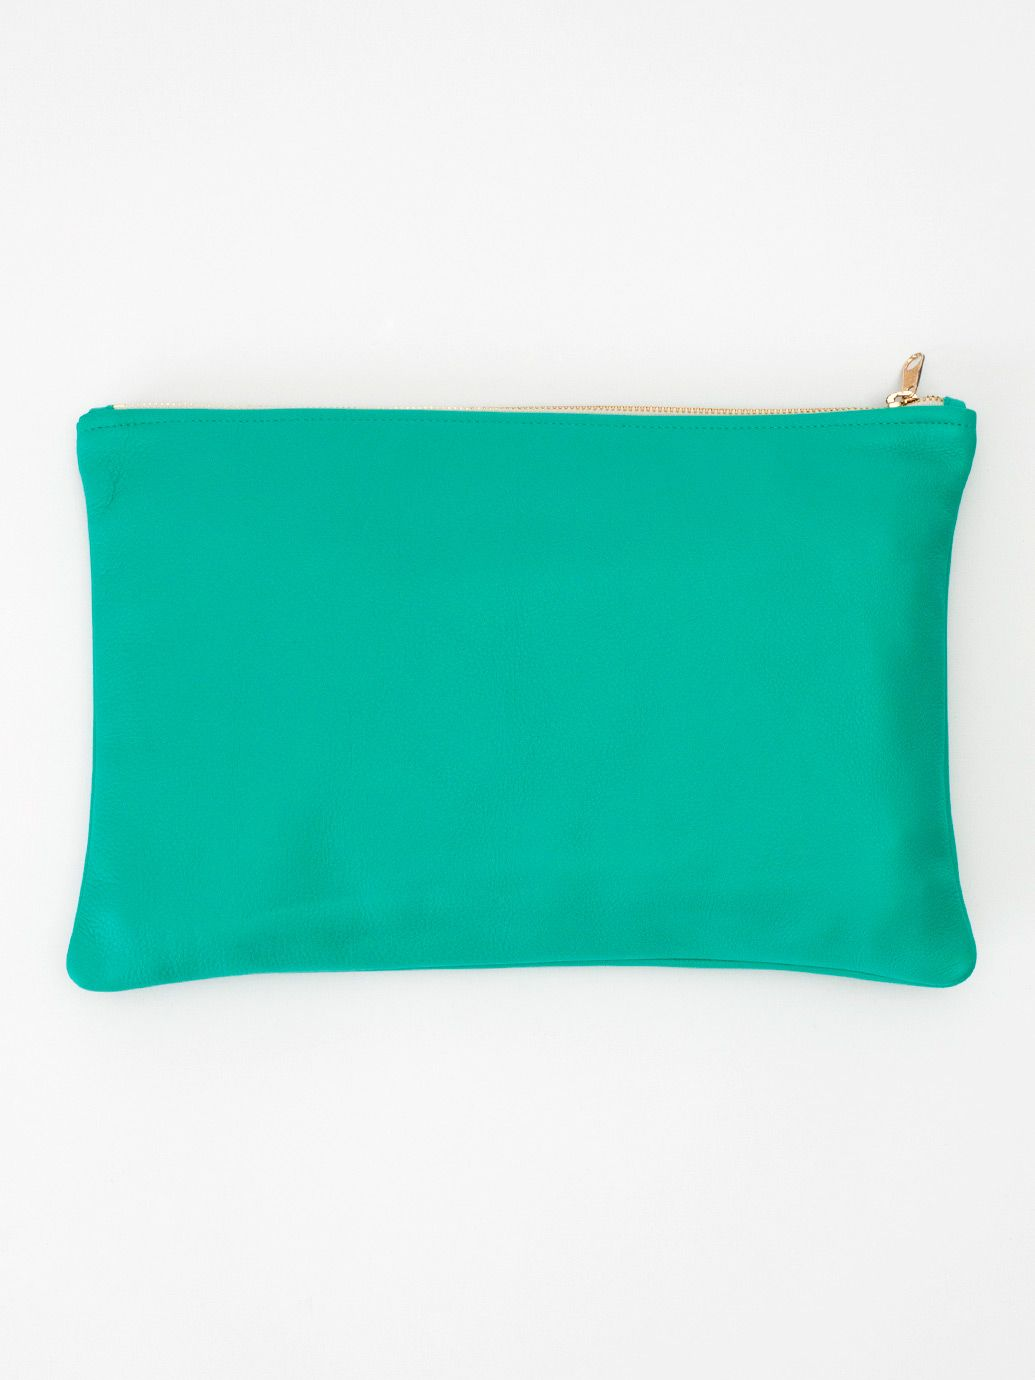 American Apparel - Medium Leather Carry-All Pouch